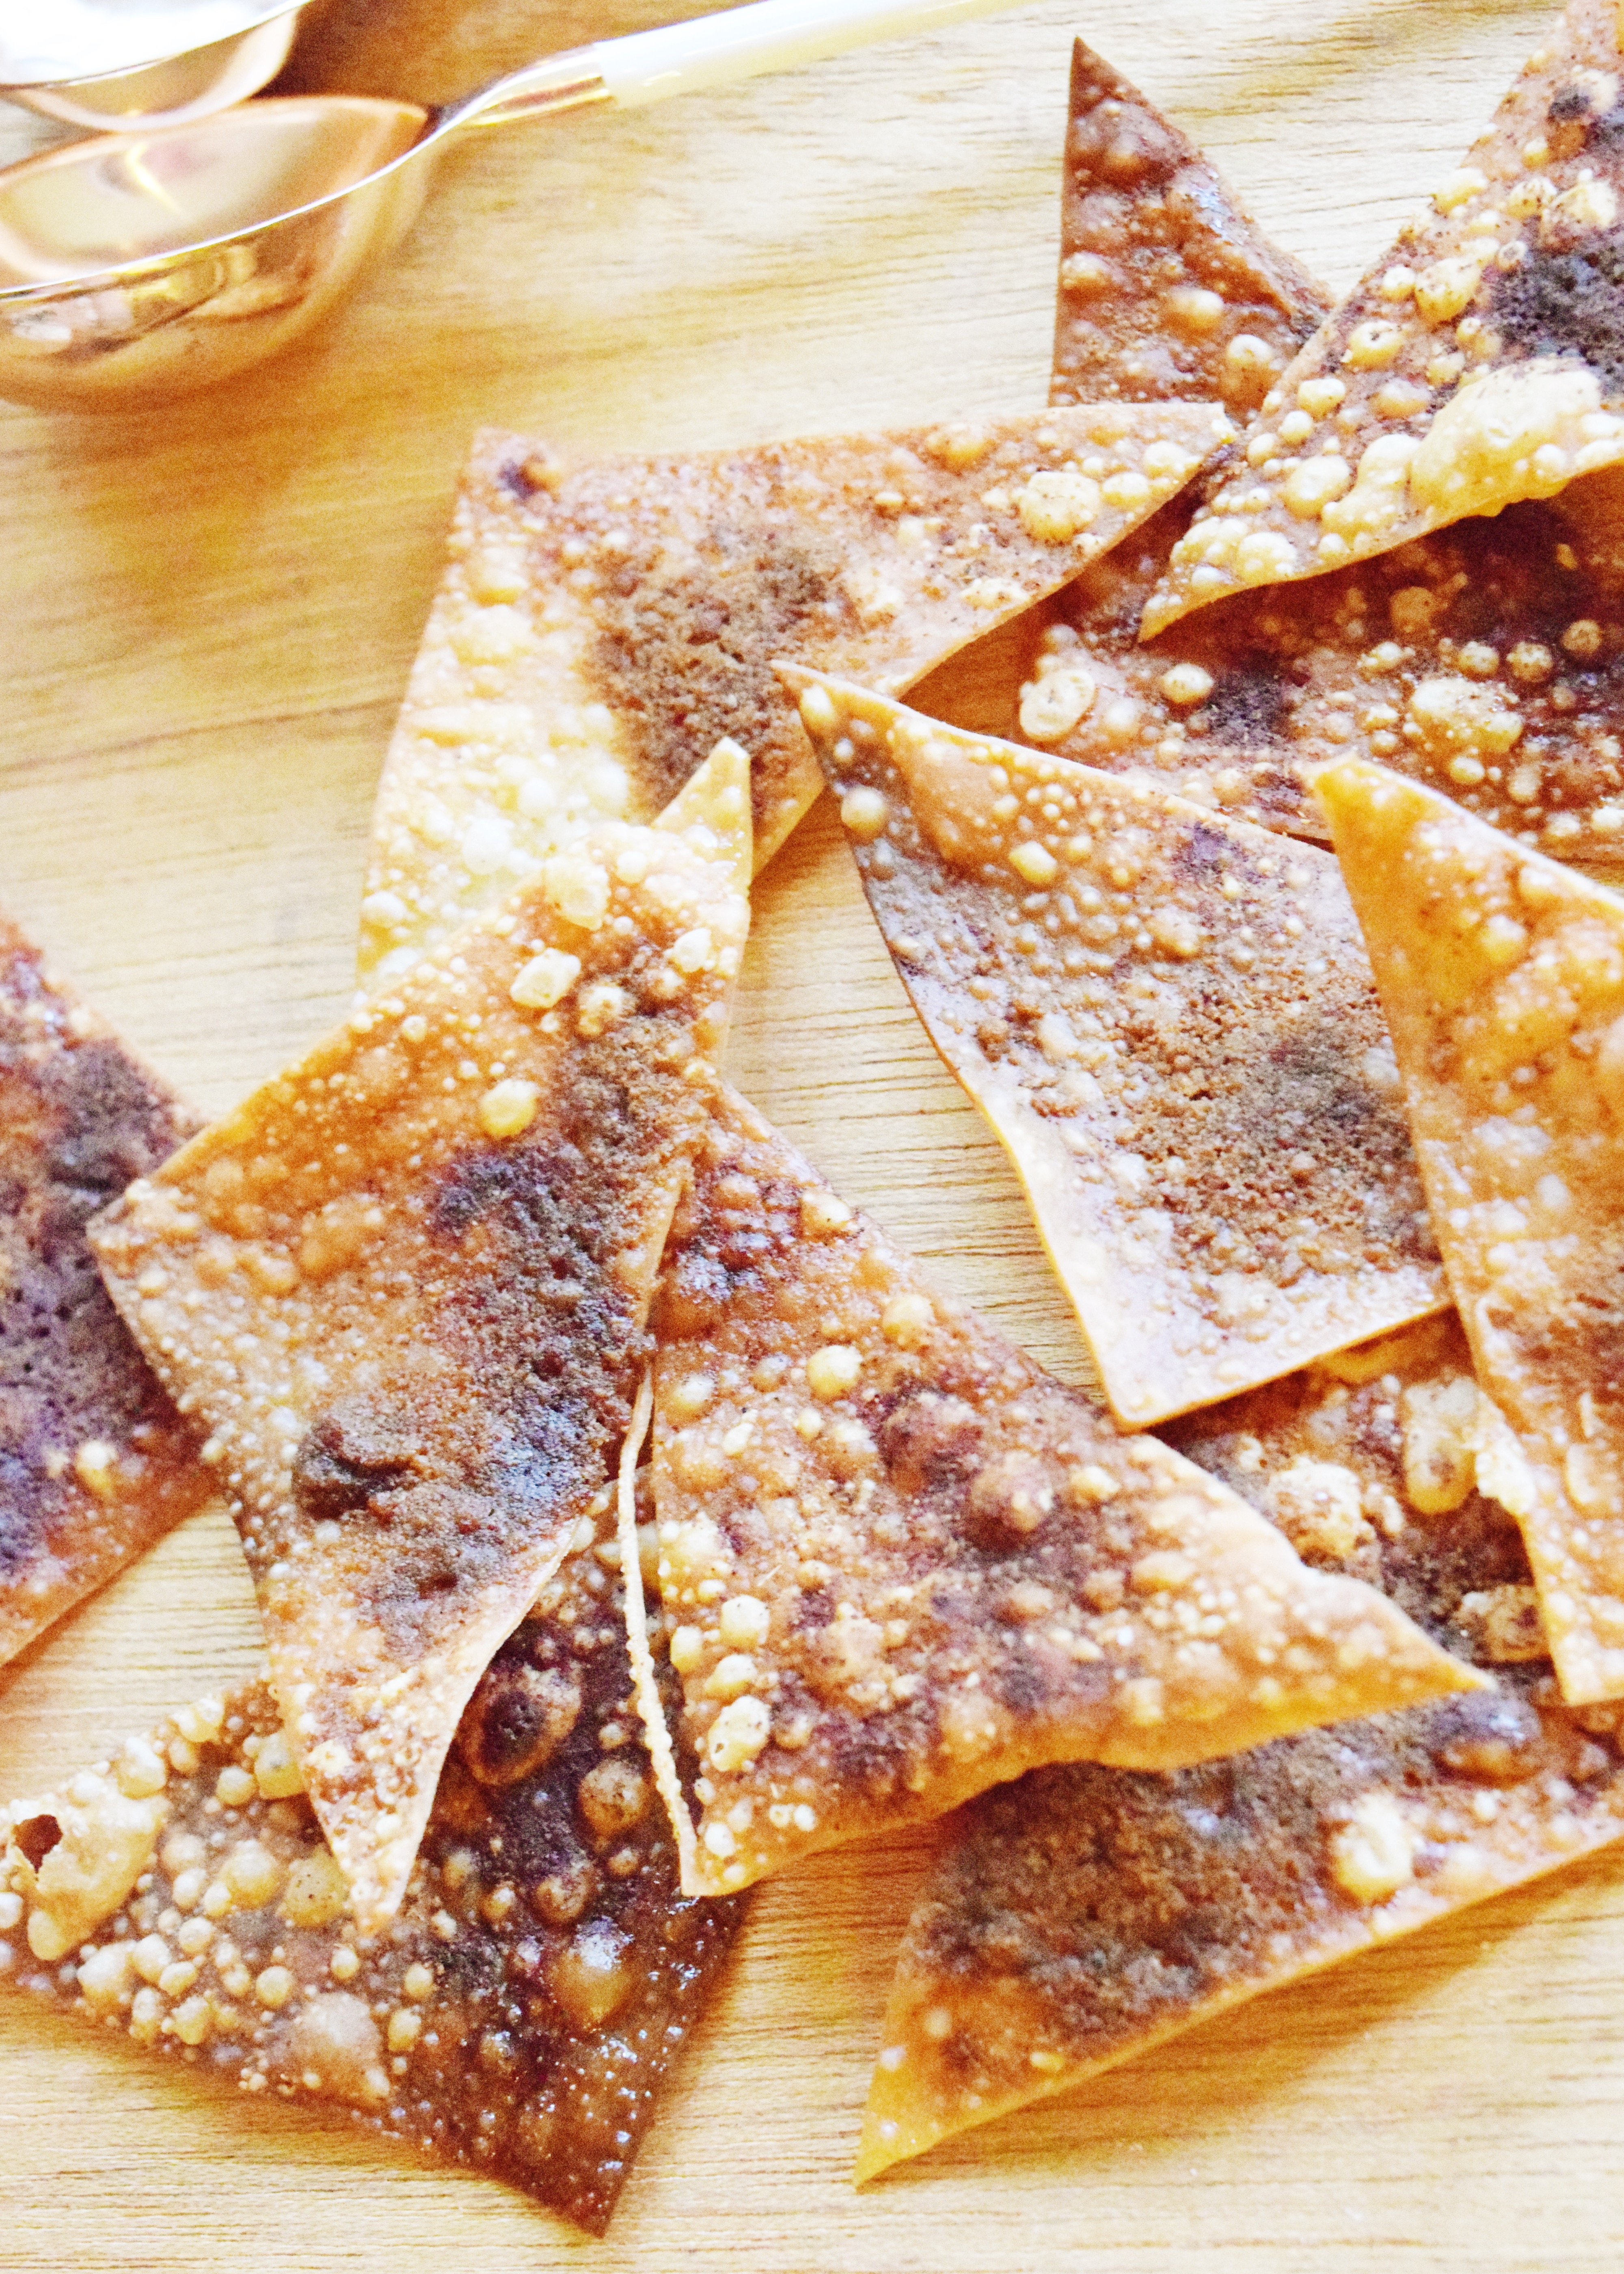 Pumpkin Spice Won Ton Chips - A quick and easy homemade chip recipe that is perfect to whip together in less than 5 minutes this fall! Pairs perfect with apple pie dip, cream cheese dip or eaten alone bursting with fall flavor! - Won Ton Wrappers - Won Tons - Won Ton Recipes - Fried Won Ton - Pumpkin Pie Spice - Pumpkin Spice Recipe - Pumpkin Pie Spice - Communikait by Kait Hanson #fall #recipe #wonton #pumpkinspice